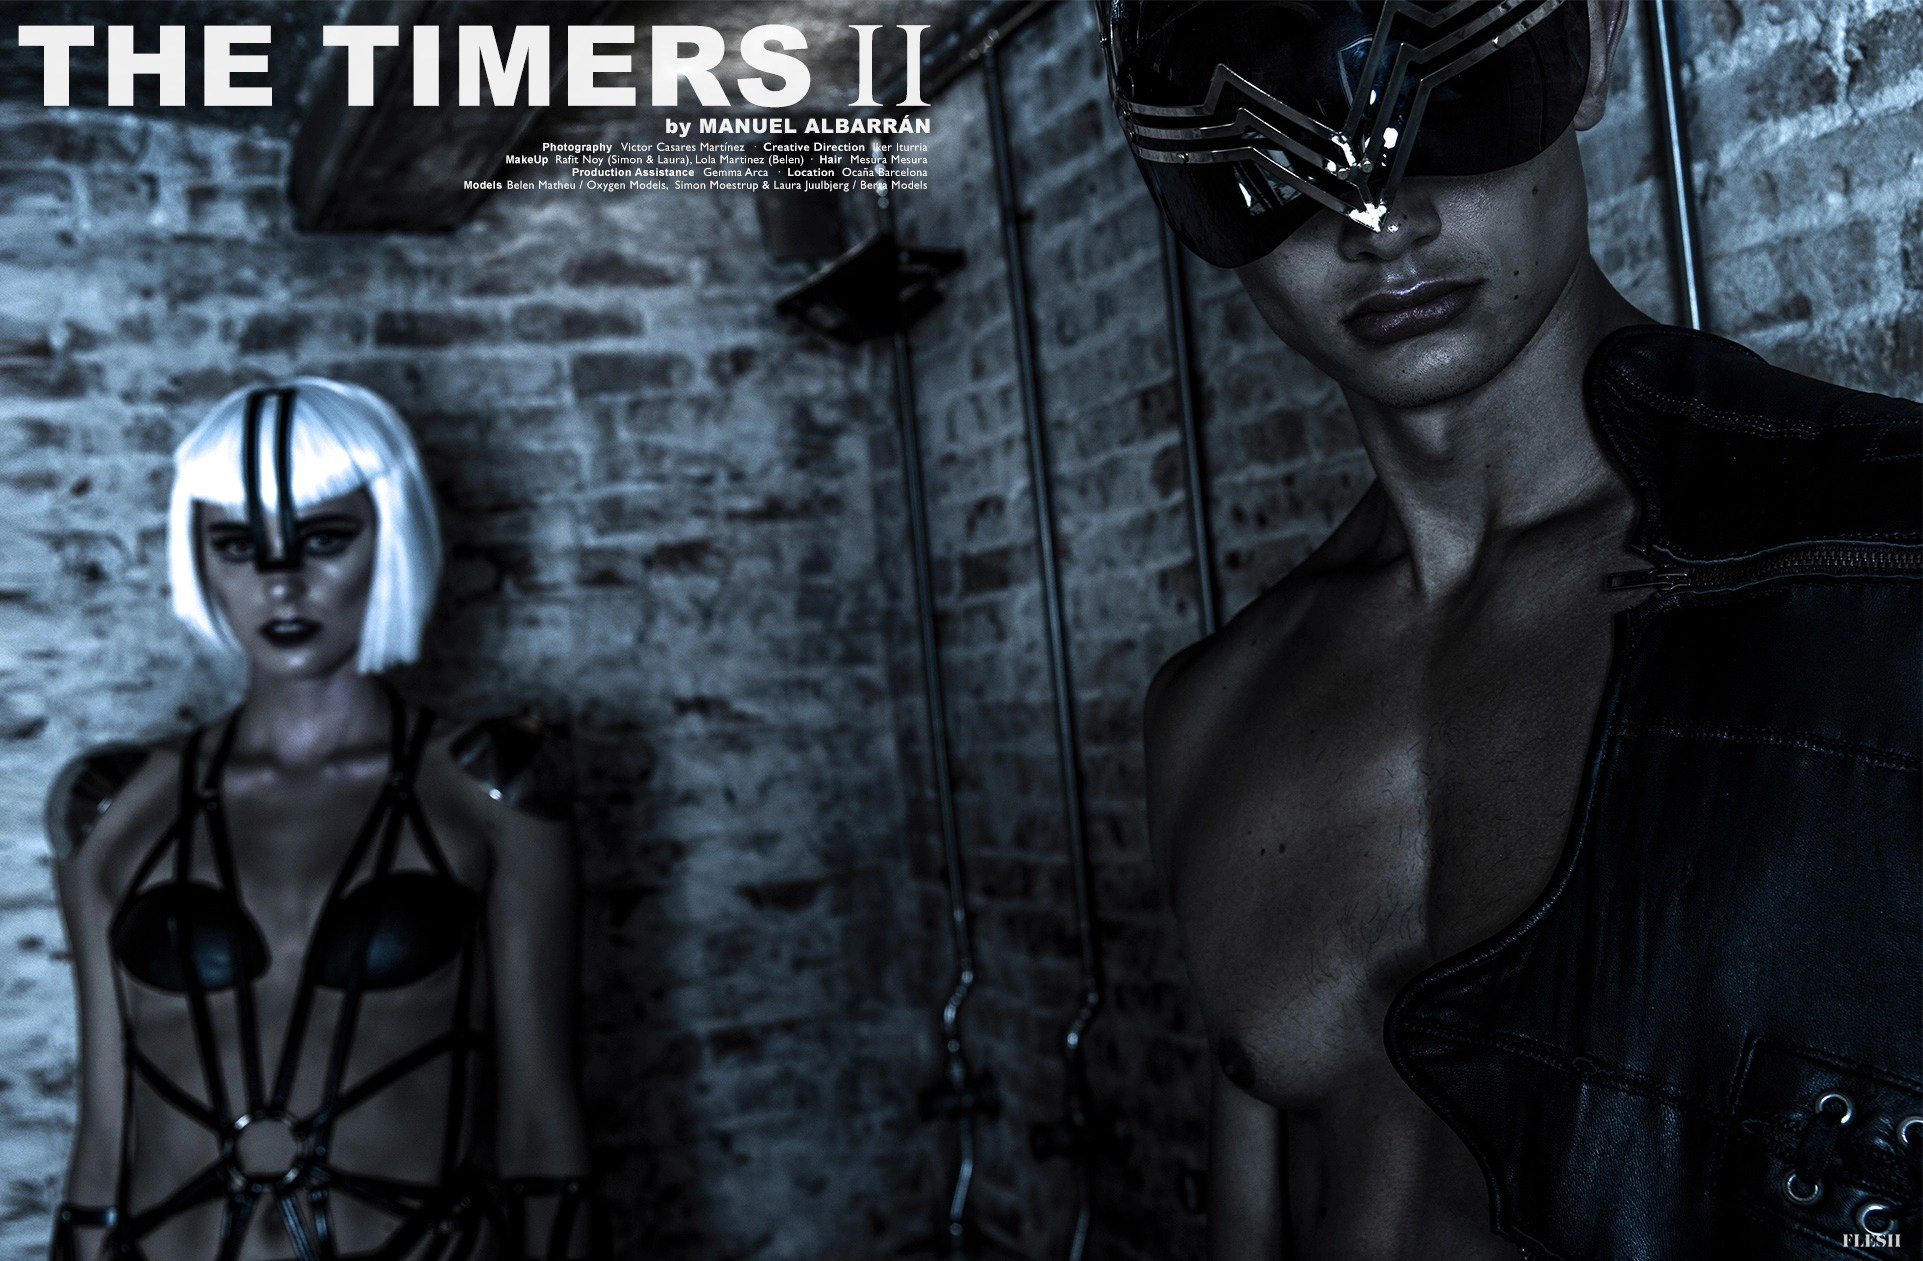 The Timers 2 by Manuel Albarran PHOTO Victor Casares Martinez